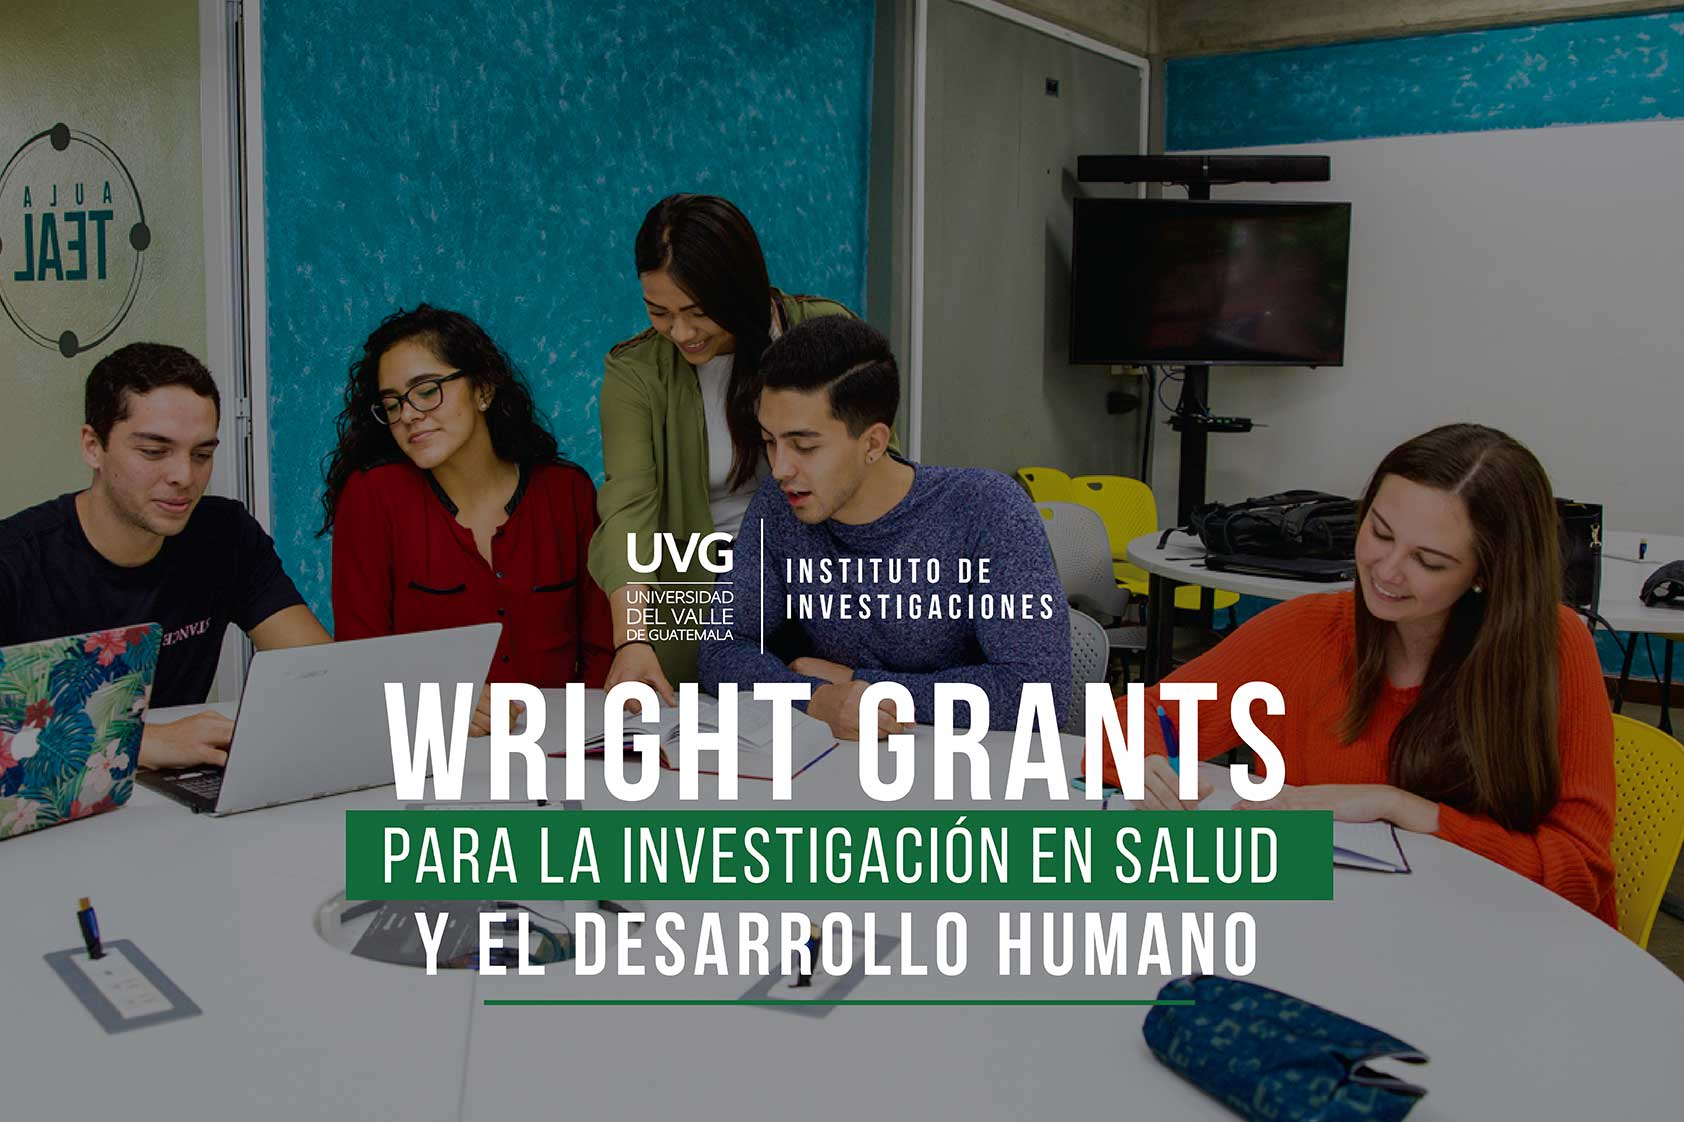 Wright Grants: una prestigiosa oportunidad de investigar